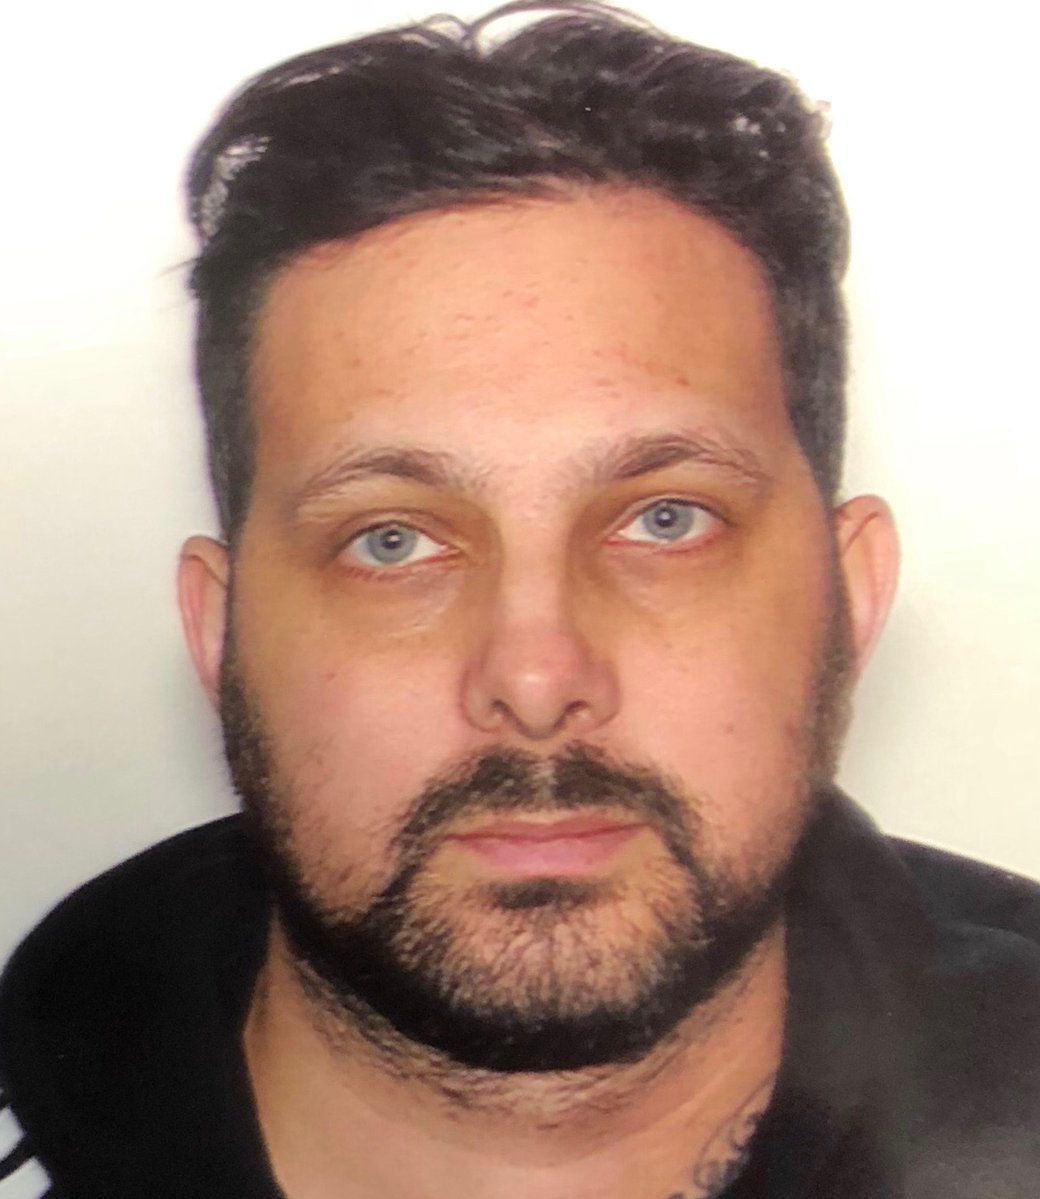 Dynamo Updates Concerned Fans About His Ill Health That Left Him 'Unable To Shuffle A Pack Of